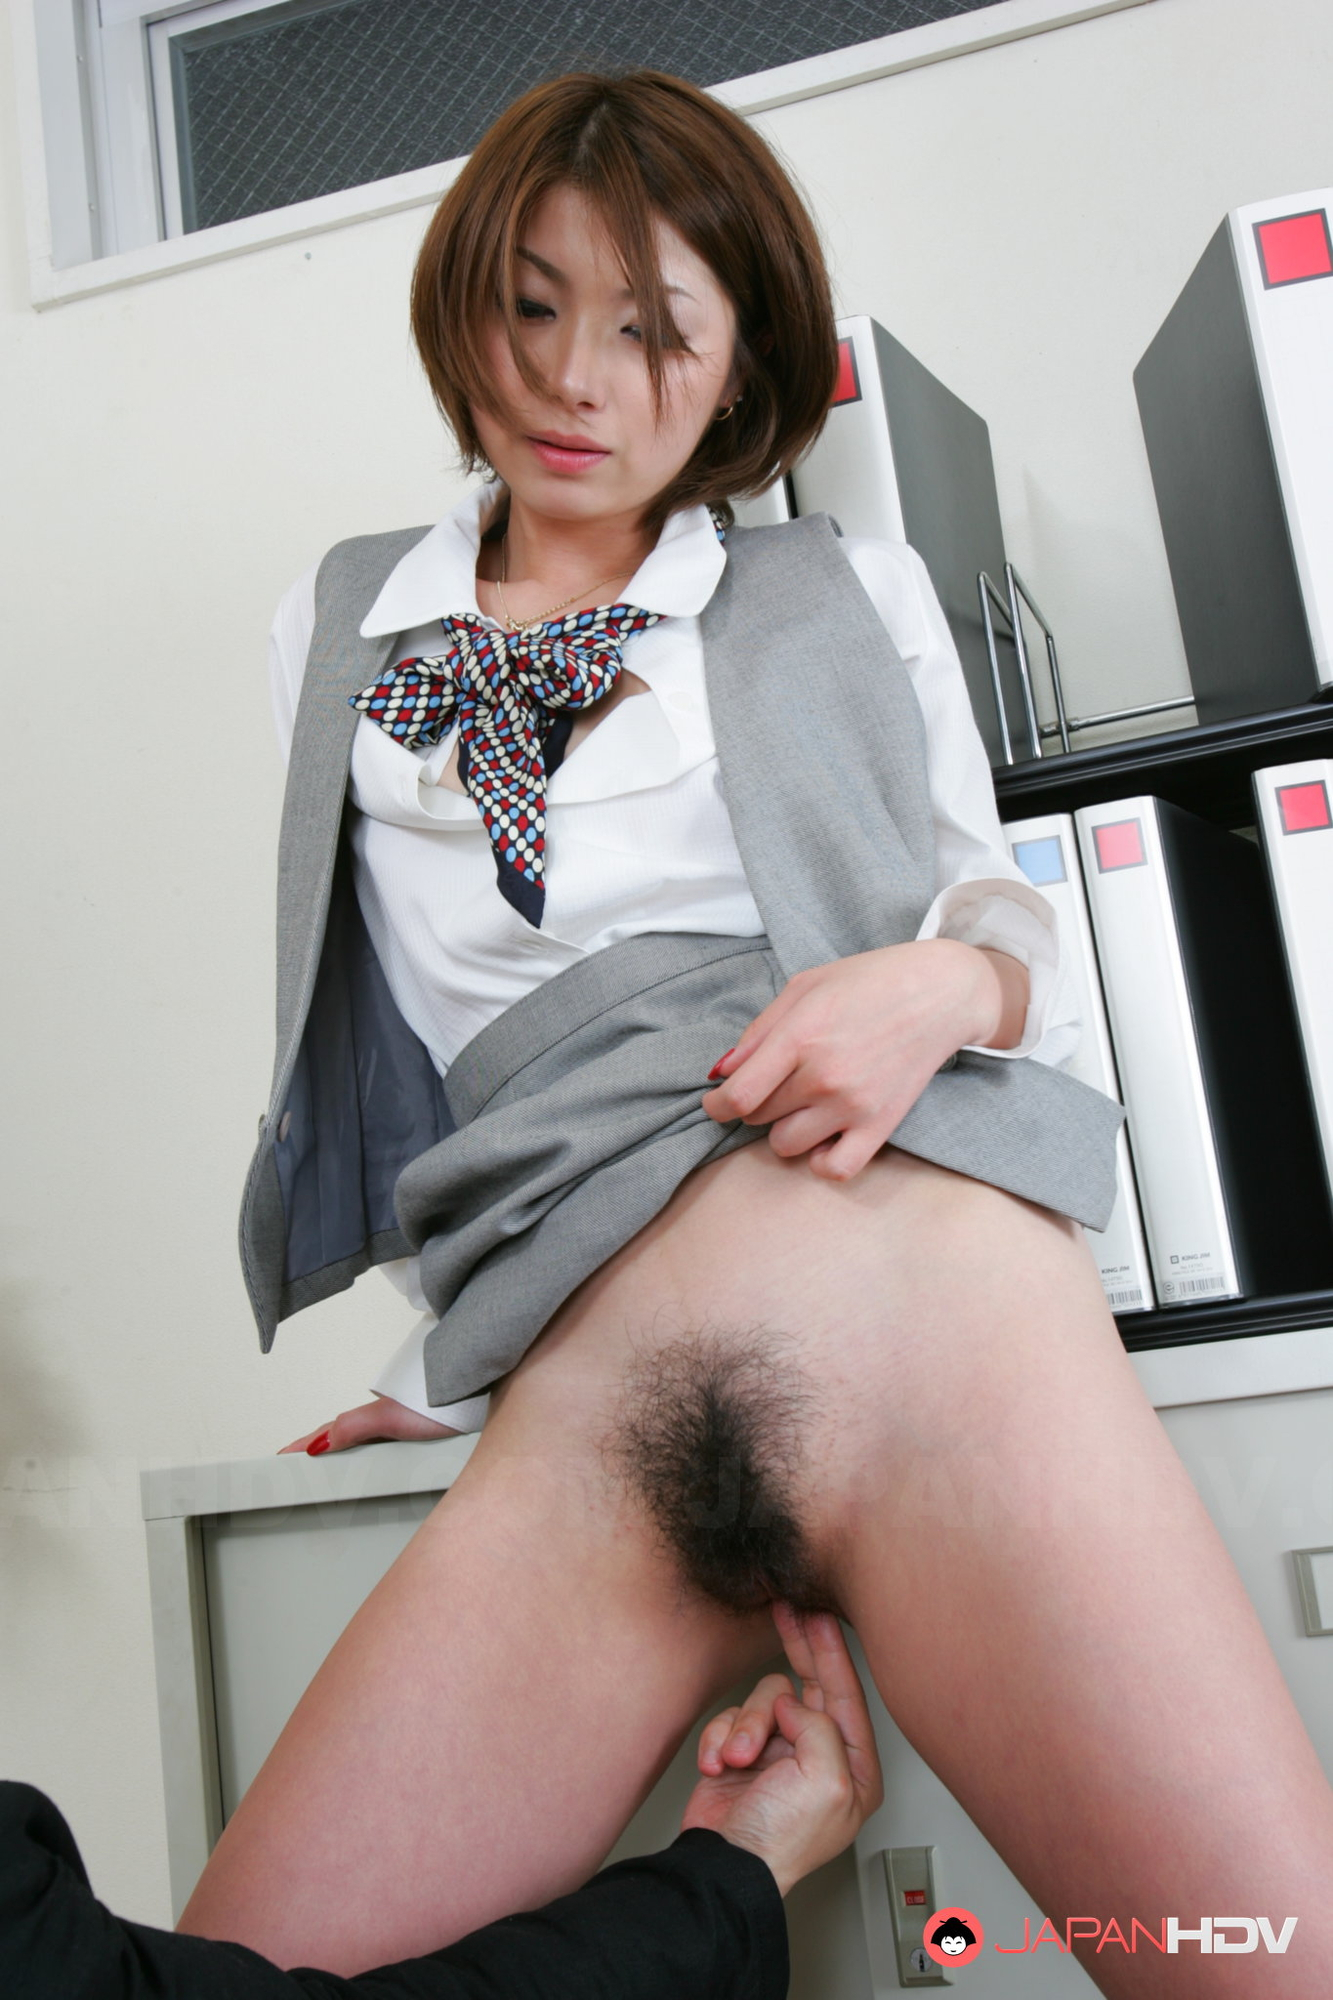 from Triston japan lady woman porn